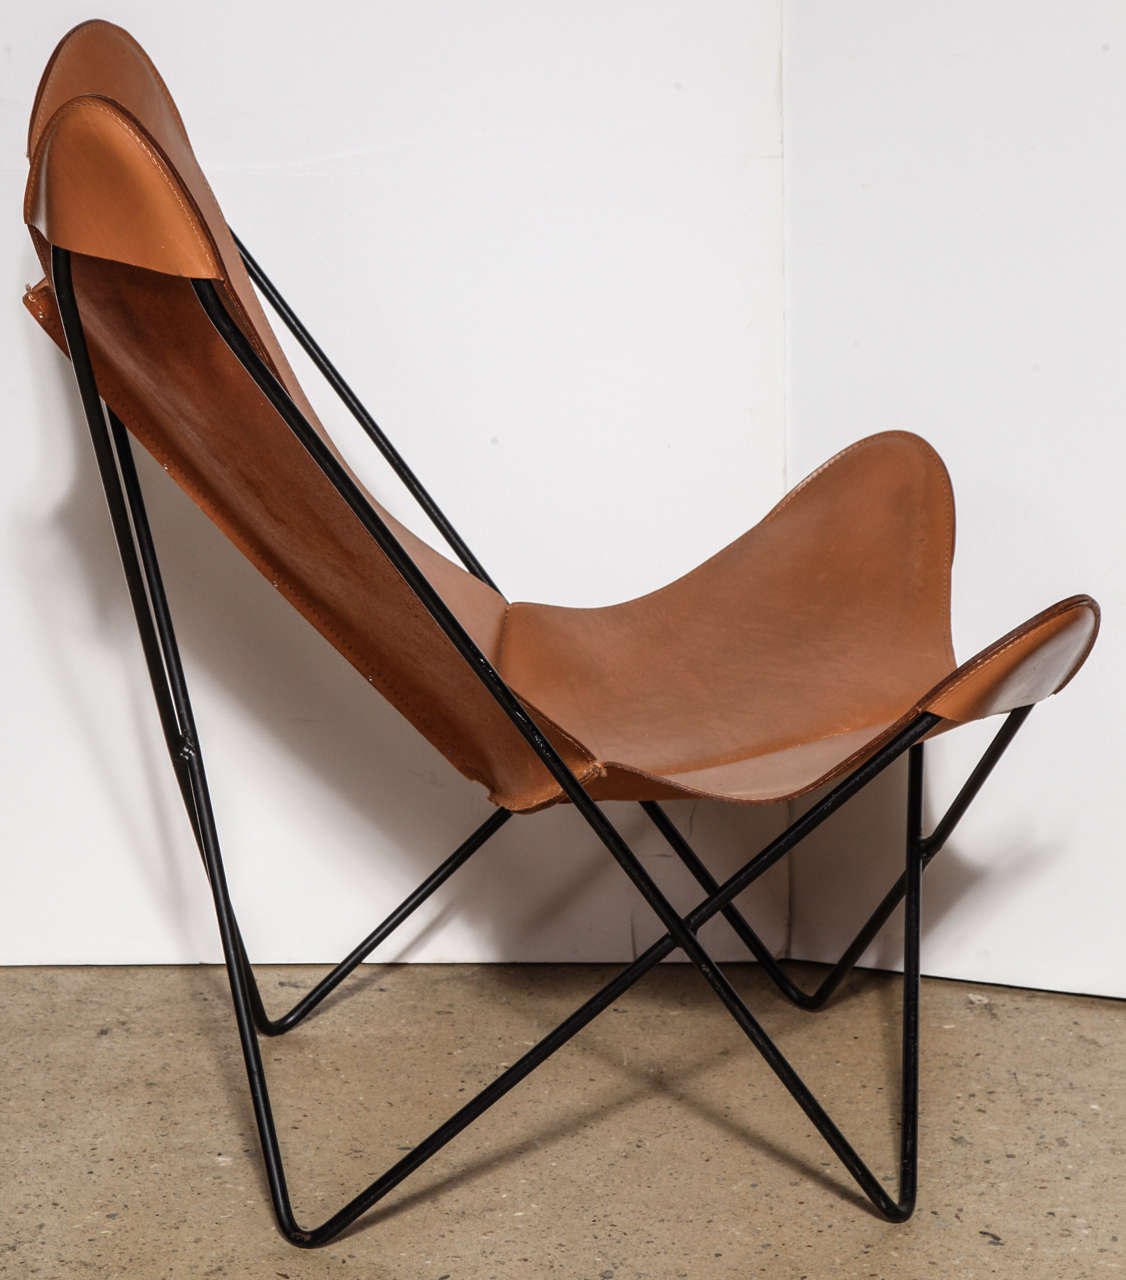 Single knoll style hardoy butterfly chair at 1stdibs for Single lounge chairs for sale